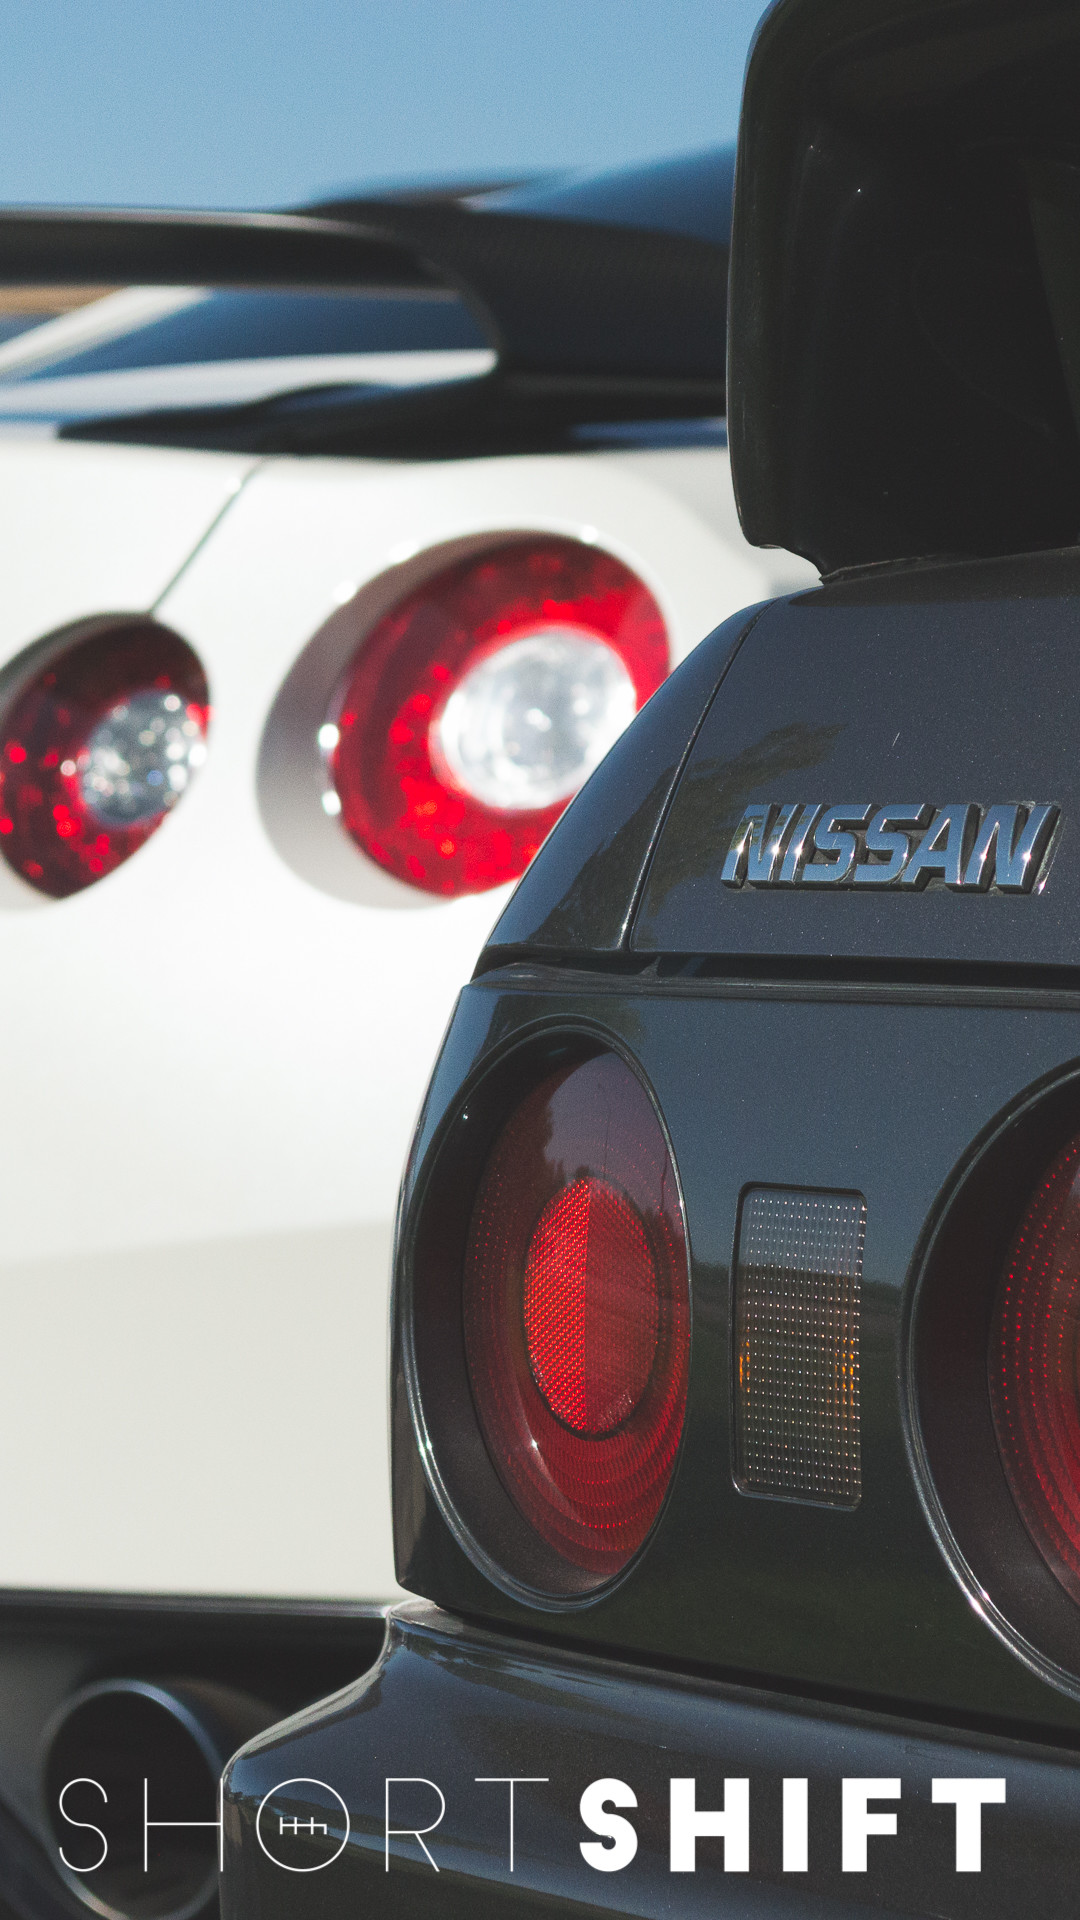 Nissan R32 Skyline & R35 GT-R – Short Shift